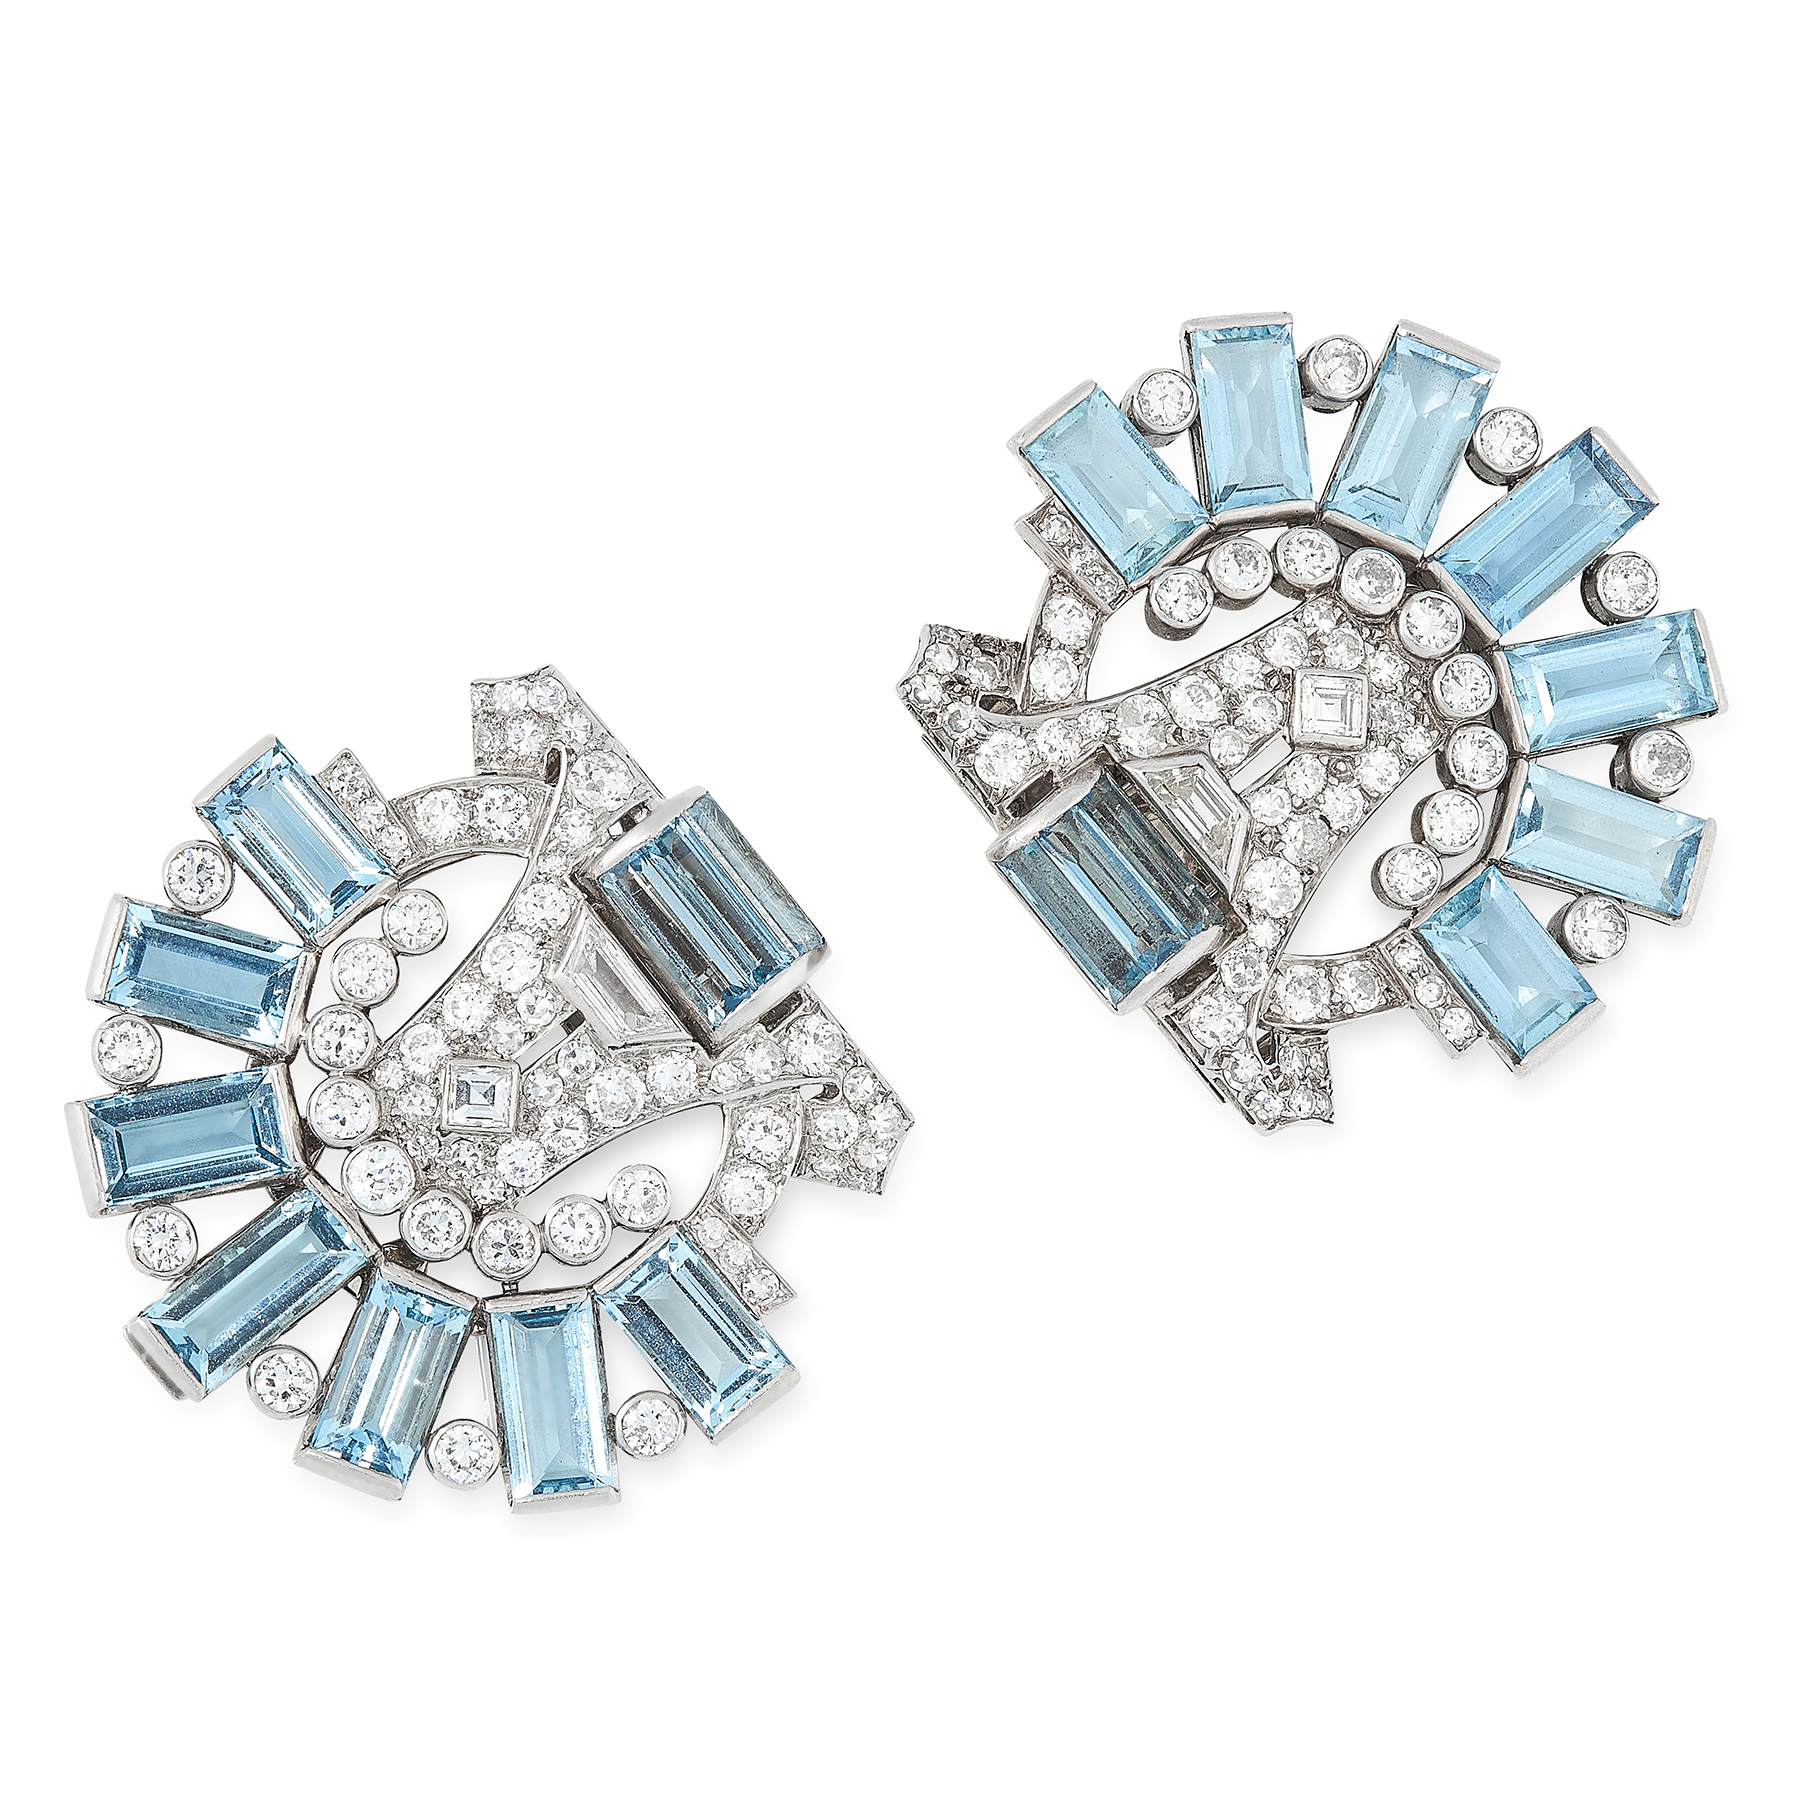 A PAIR OF AQUAMARINE AND DIAMOND CLIP BROOCHES, CARTIER CIRCA 1940 in 18ct white gold, each set with